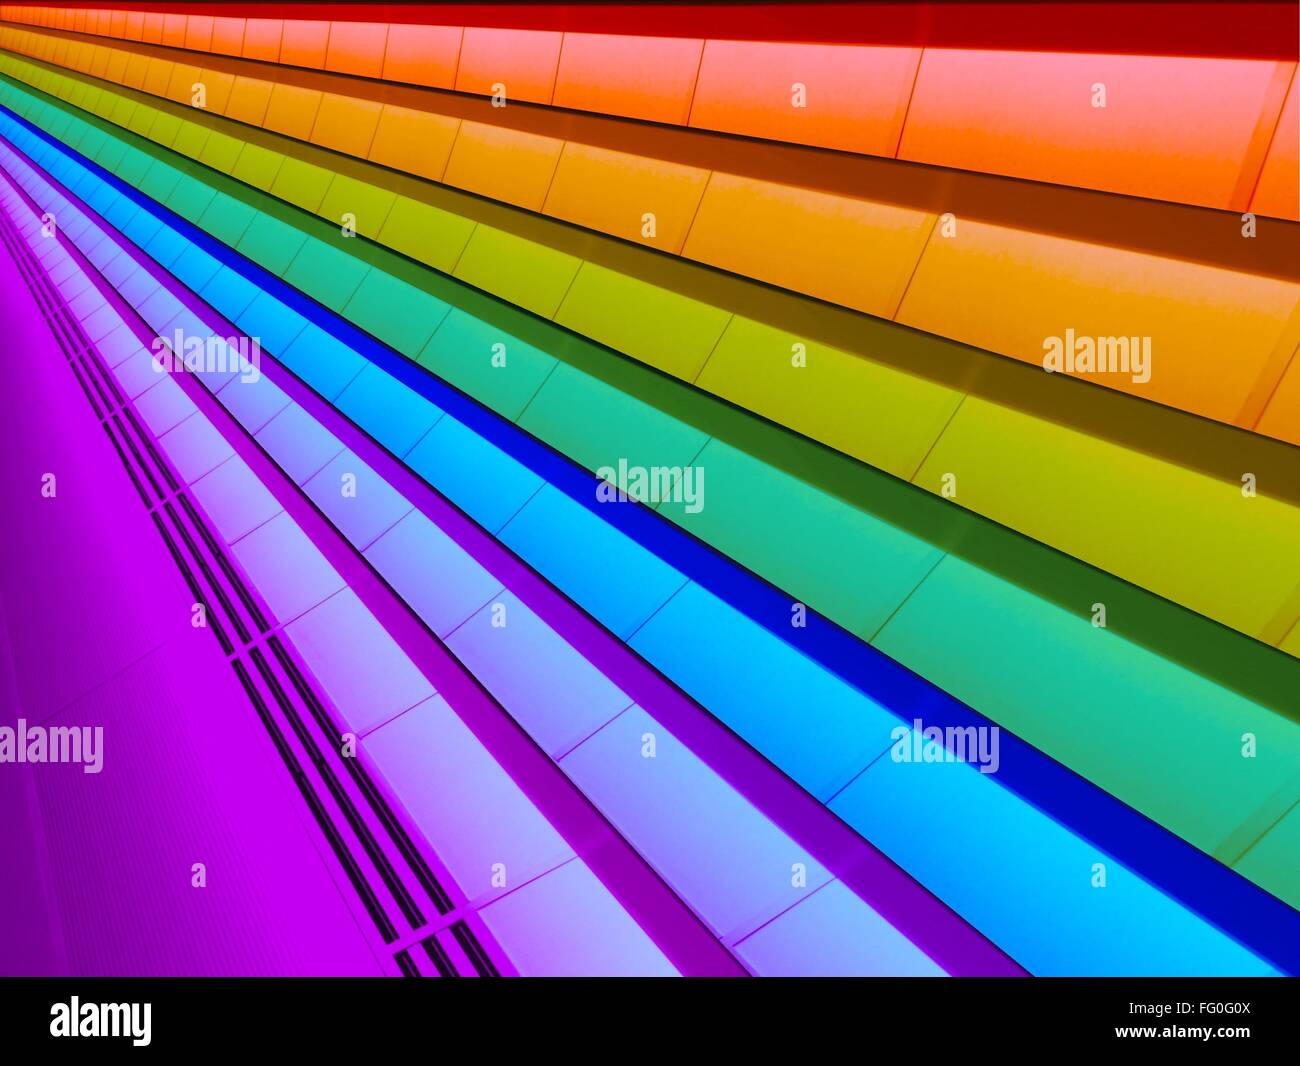 Low Angle View Of Multi Colored Ceiling - Stock Image